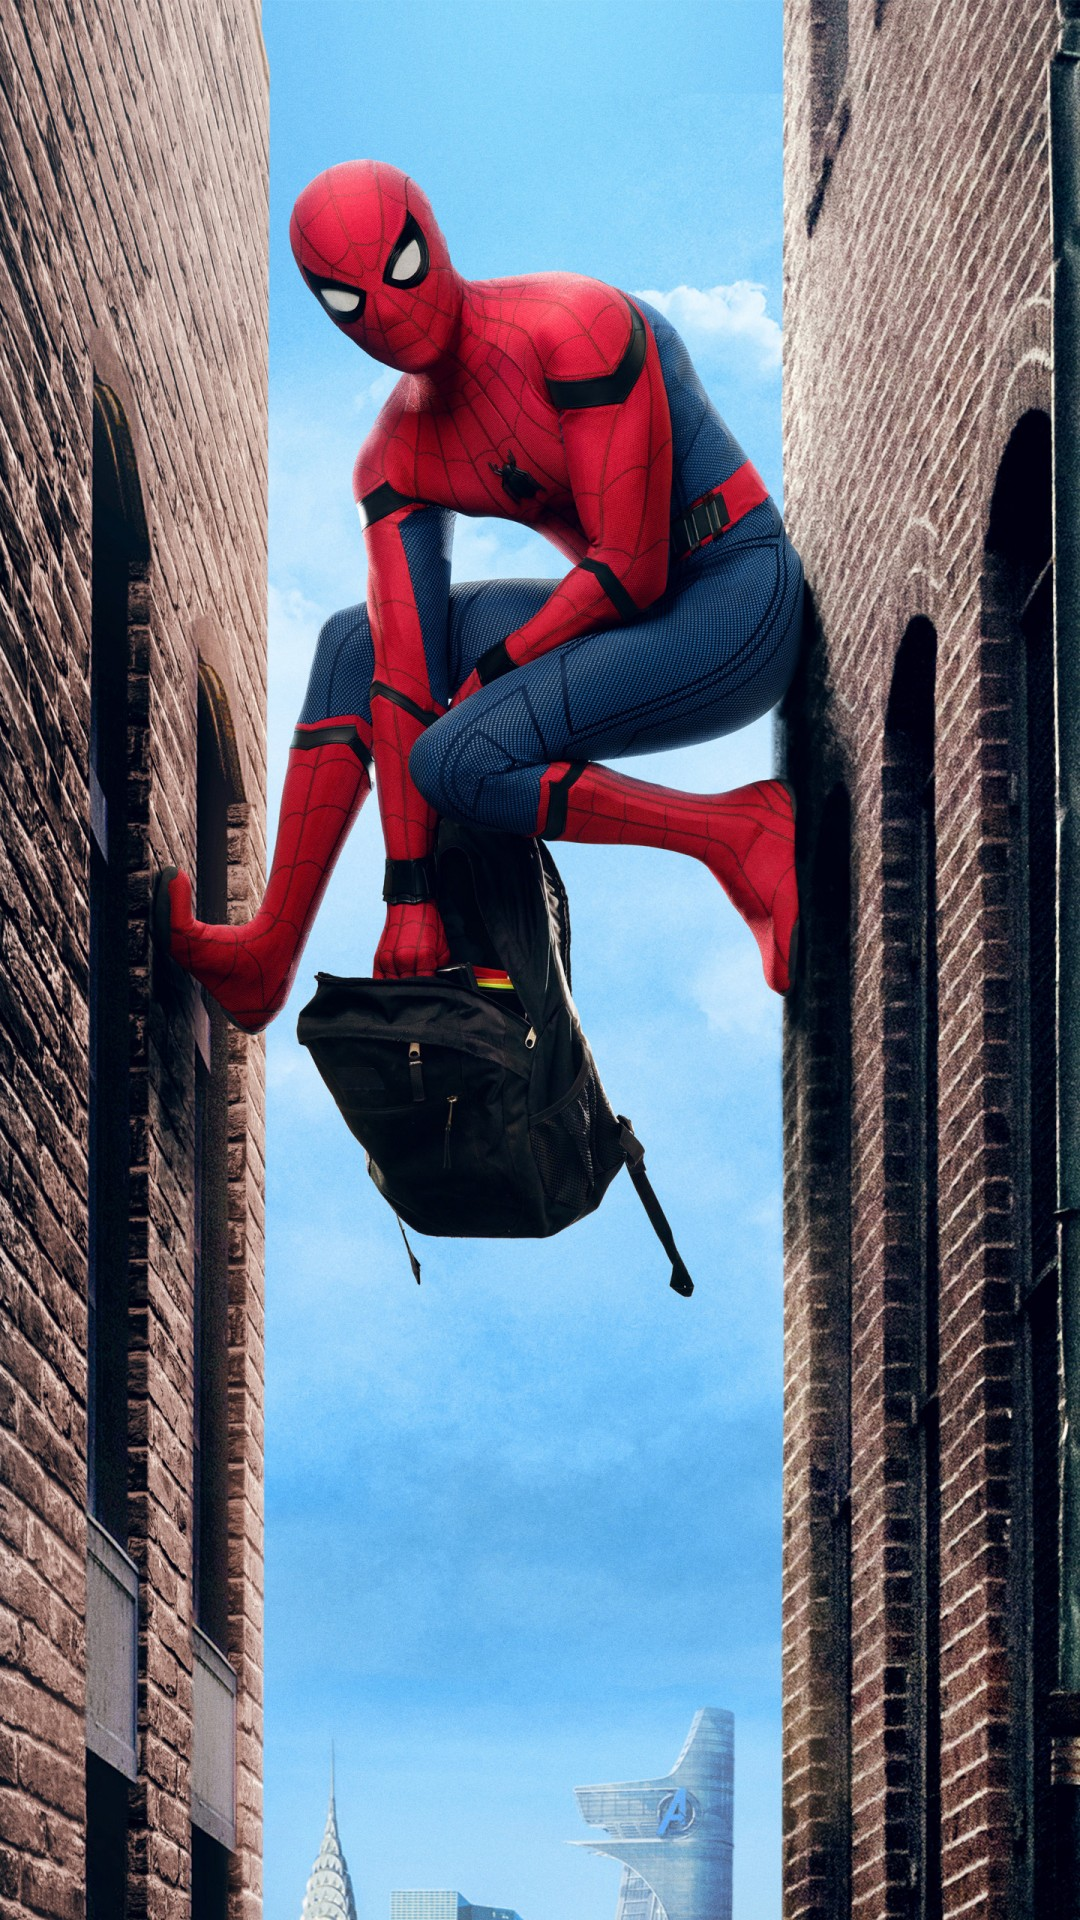 Iphone 6s Plus Wallpaper Hd Spider Man Homecoming Hd Wallpapers Hd Wallpapers Id